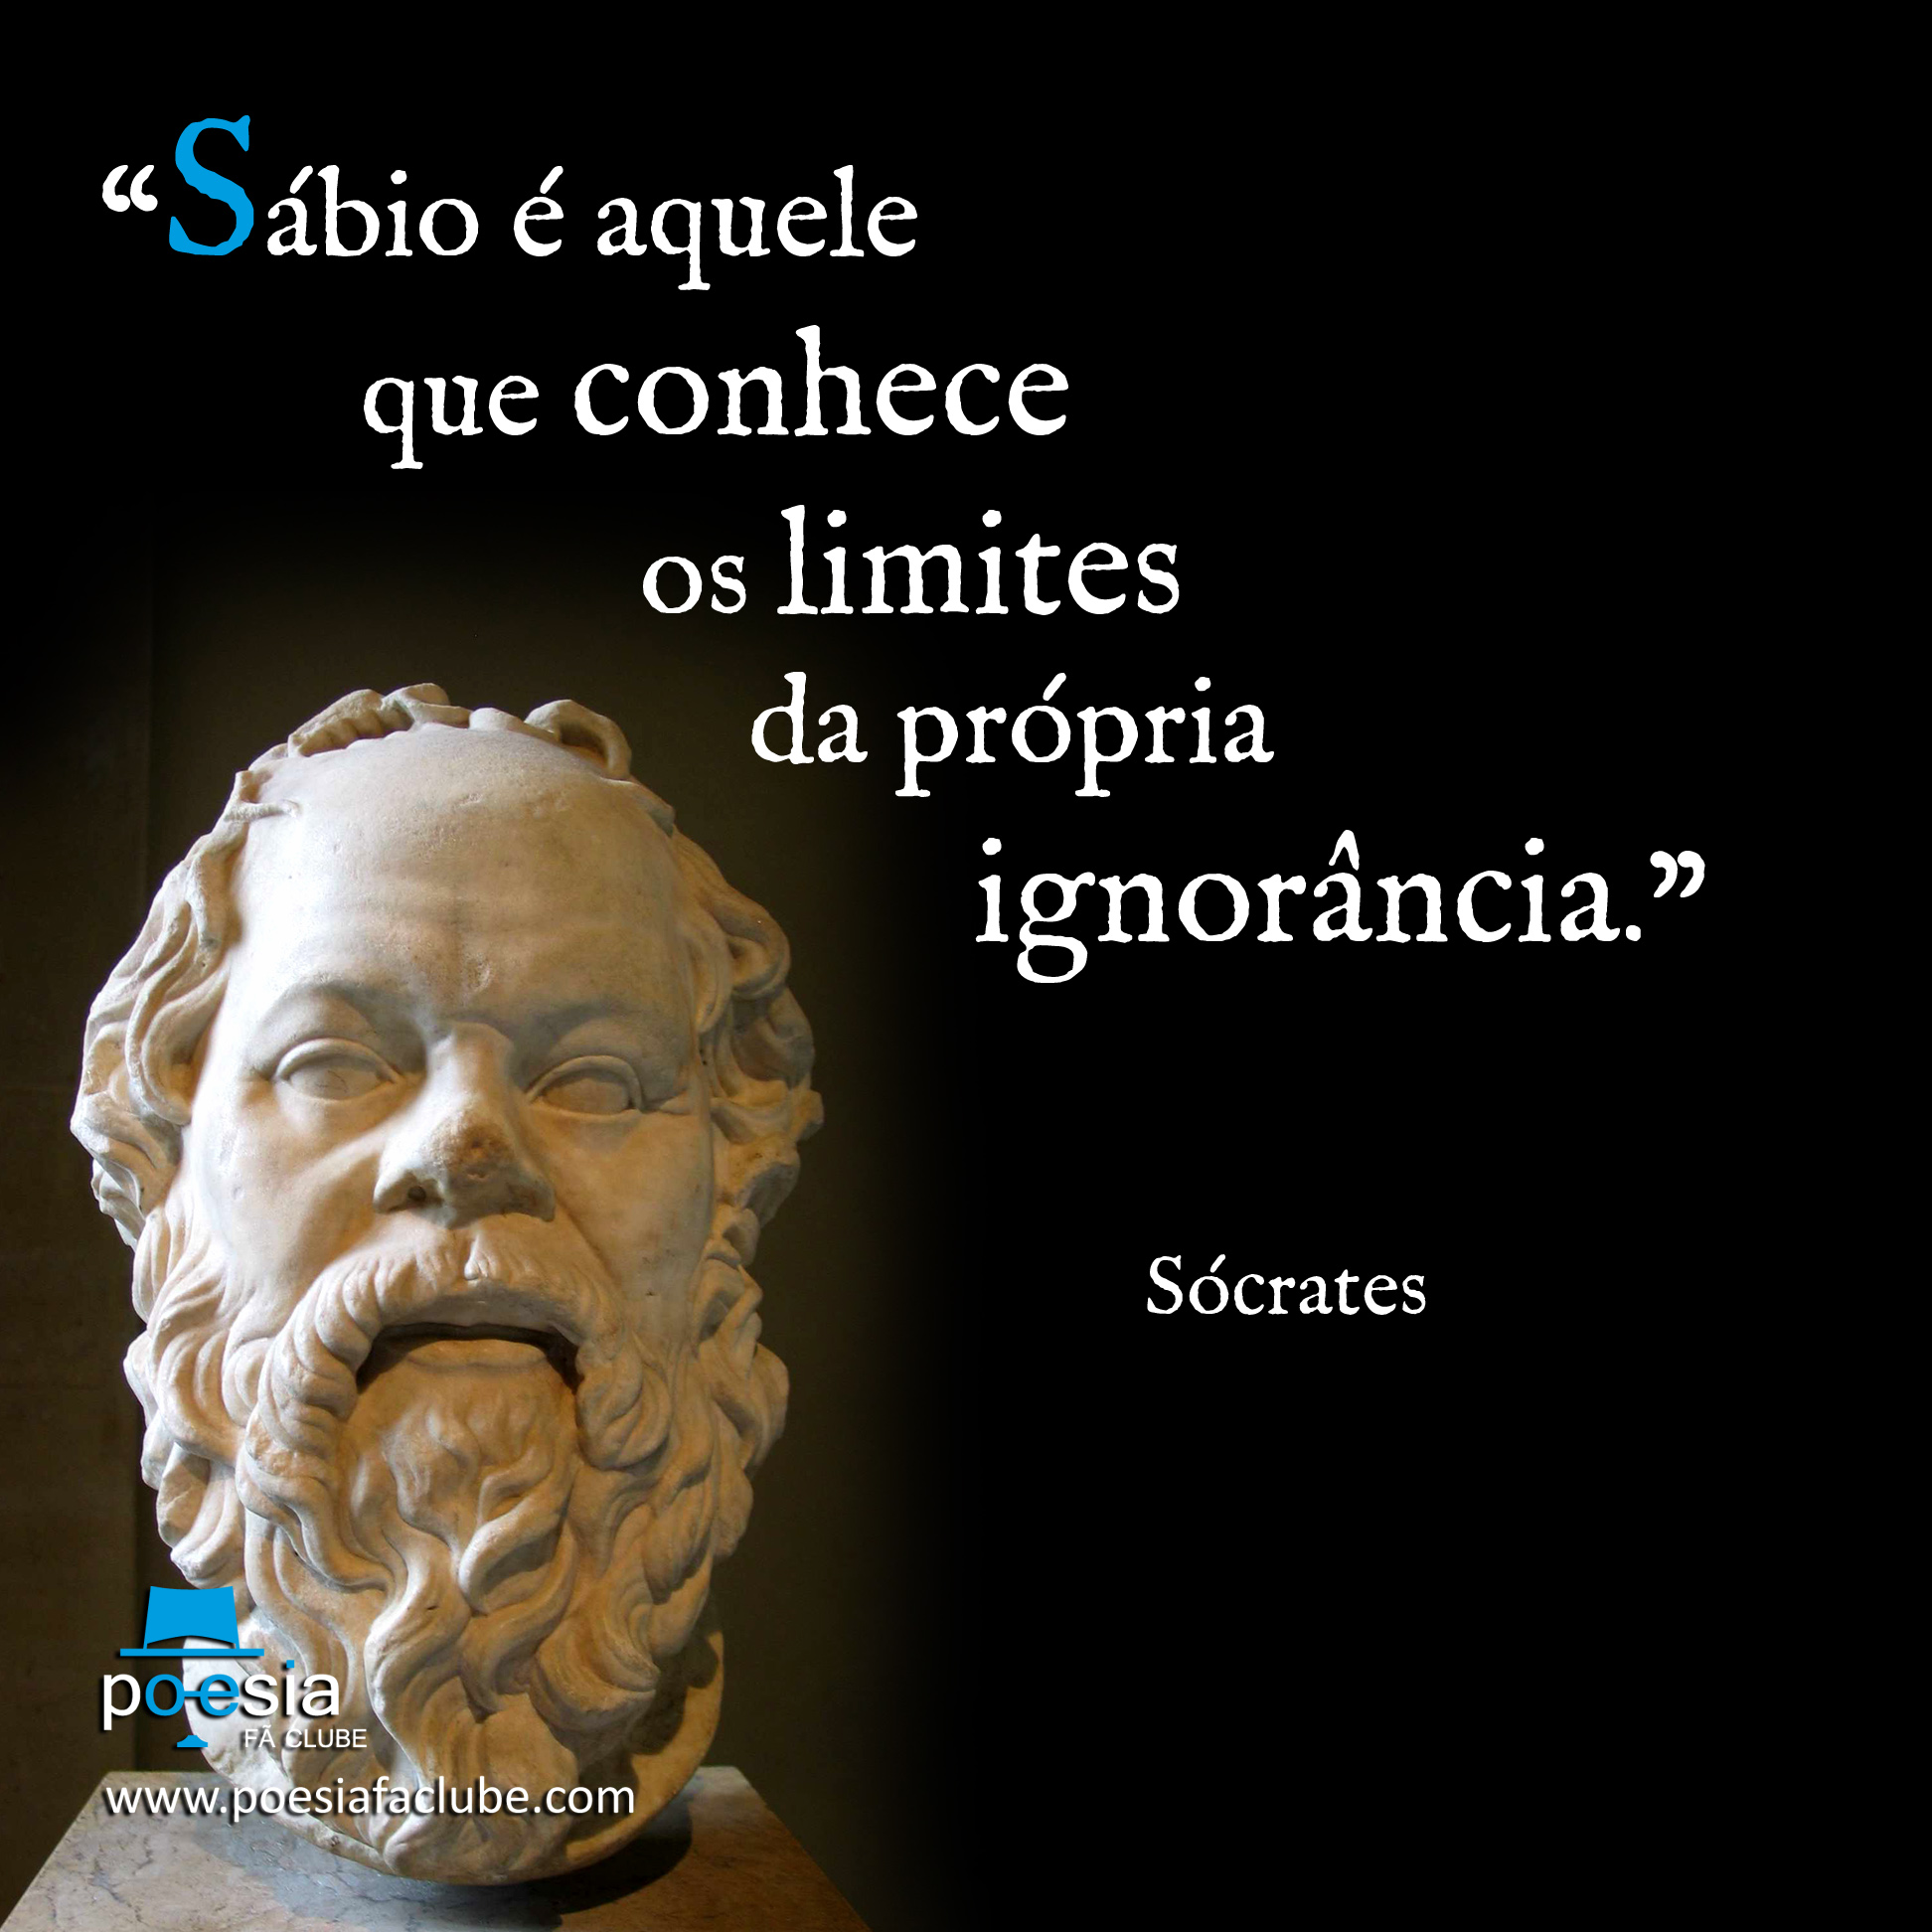 socrates 316 quotes from socrates: 'the only true wisdom is in knowing you know nothing', 'the unexamined life is not worth living', and 'there is only one good, knowledge, and one evil, ignorance'.